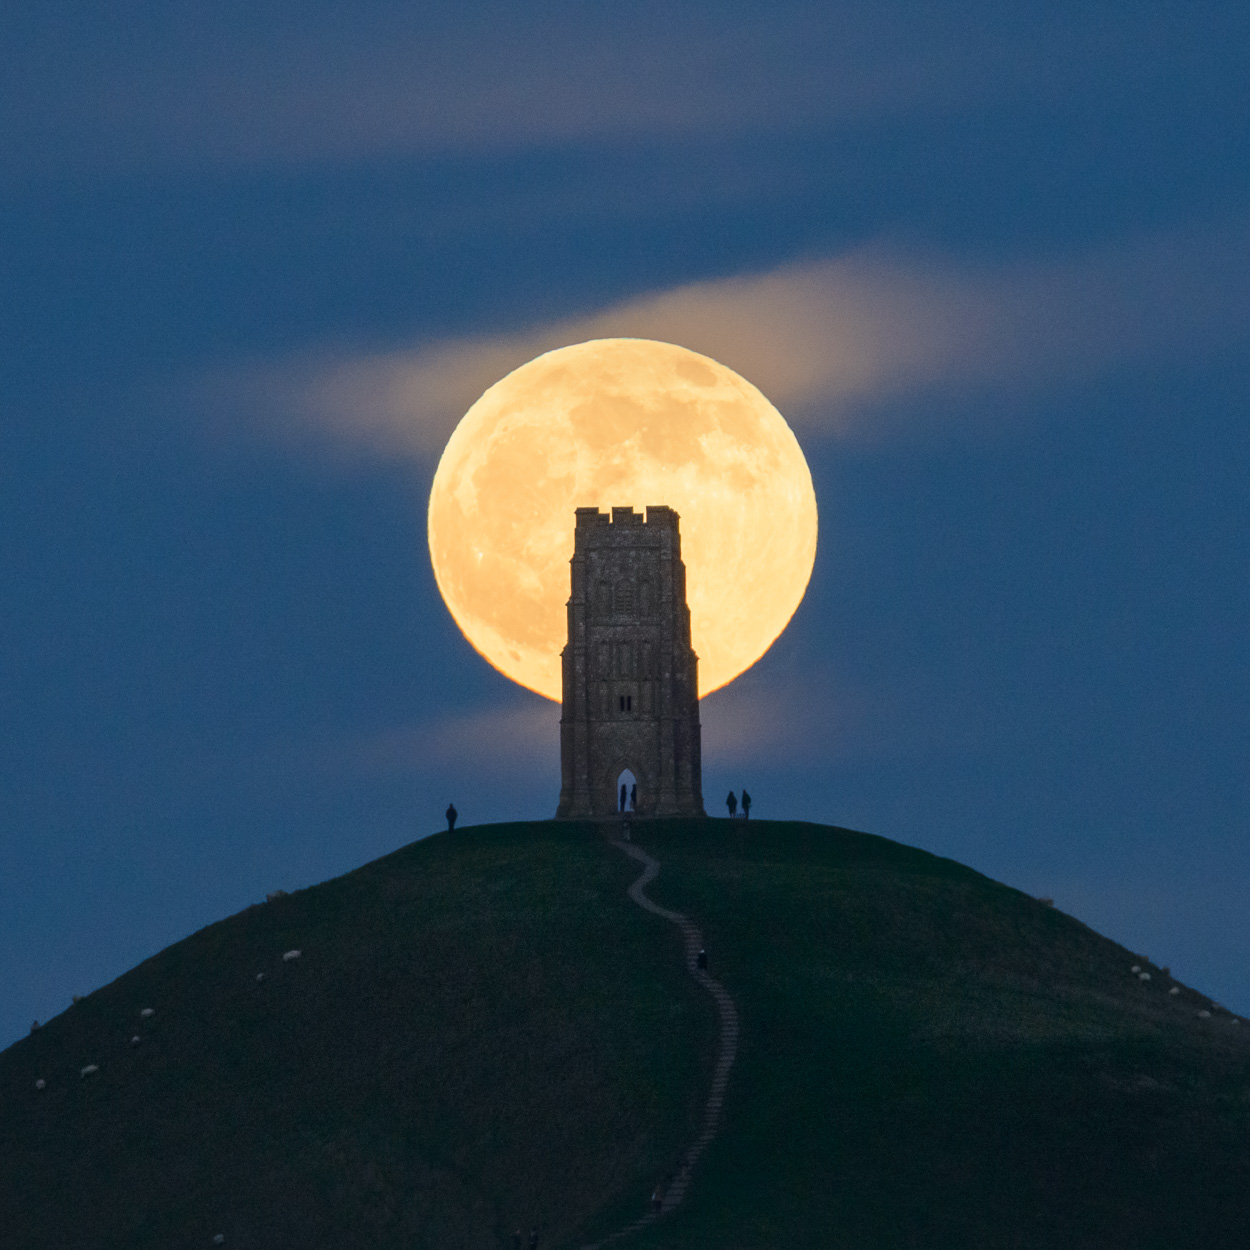 A 'Wolf moon', the first full moon of 2020, rising behind Glastonbury Tor, Somerset, on 10th January 2020. Image © Stephen Spraggon.